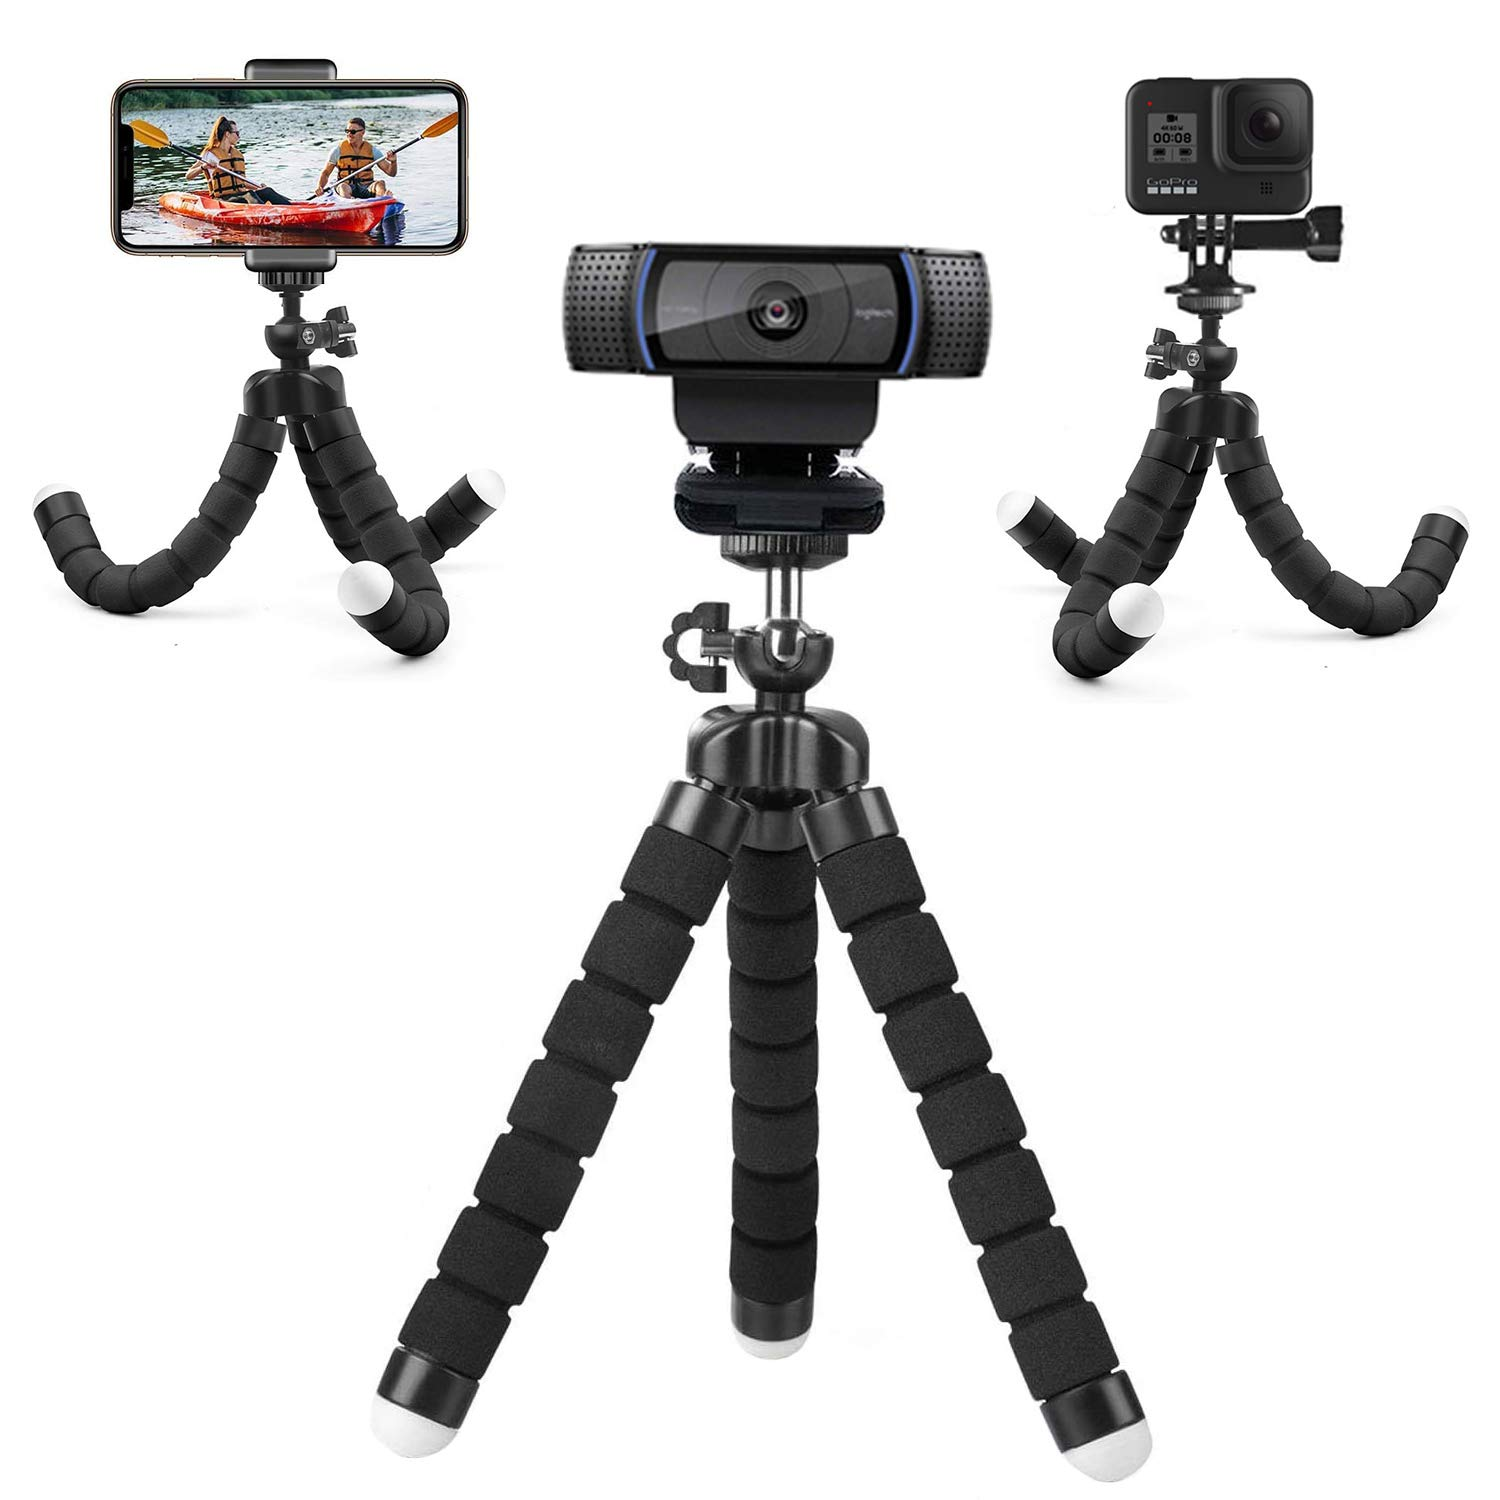 Flexible Desk Webcam Stand,Adjustable Premium Phone Holder,Portable Sponge Camera Tripod. Compatible with GoPro Hero,Logitech and Nexigo Webcam.